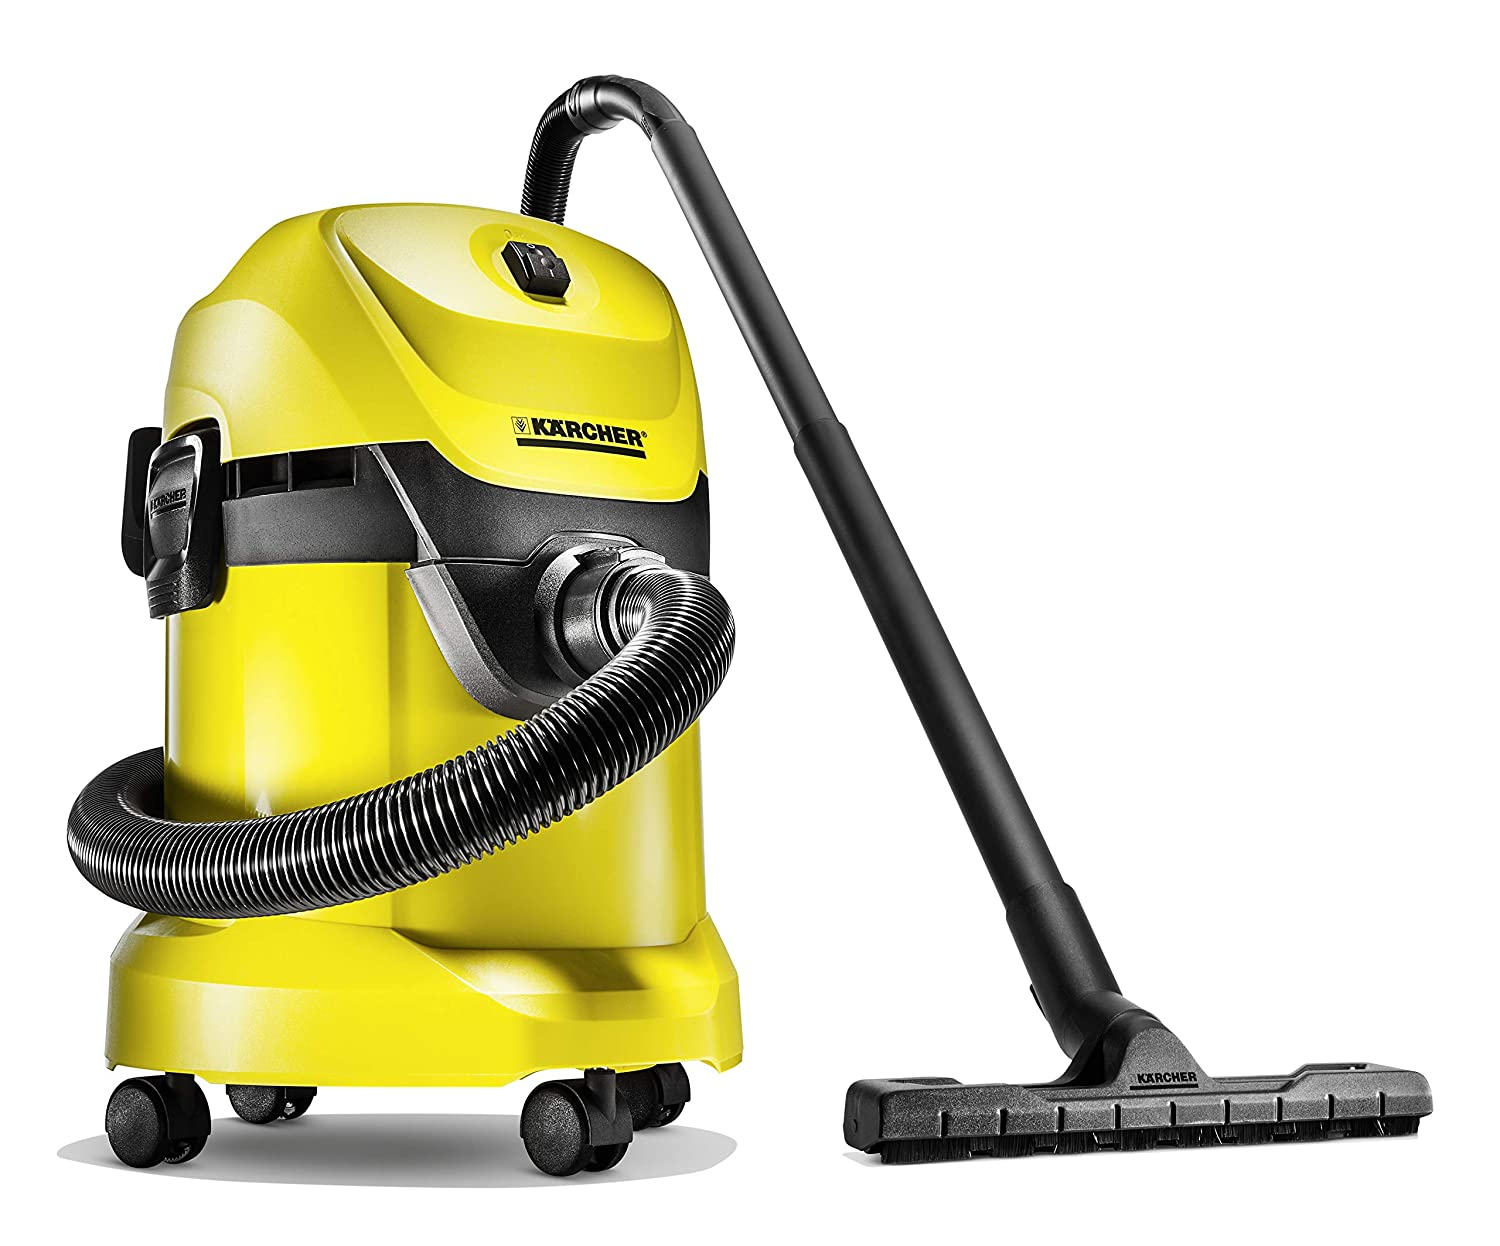 best energy efficient vacuum cleaner: Karcher wd 3 wet and dry multi-purpose Vacuum cleaner 1000w India us review 2021